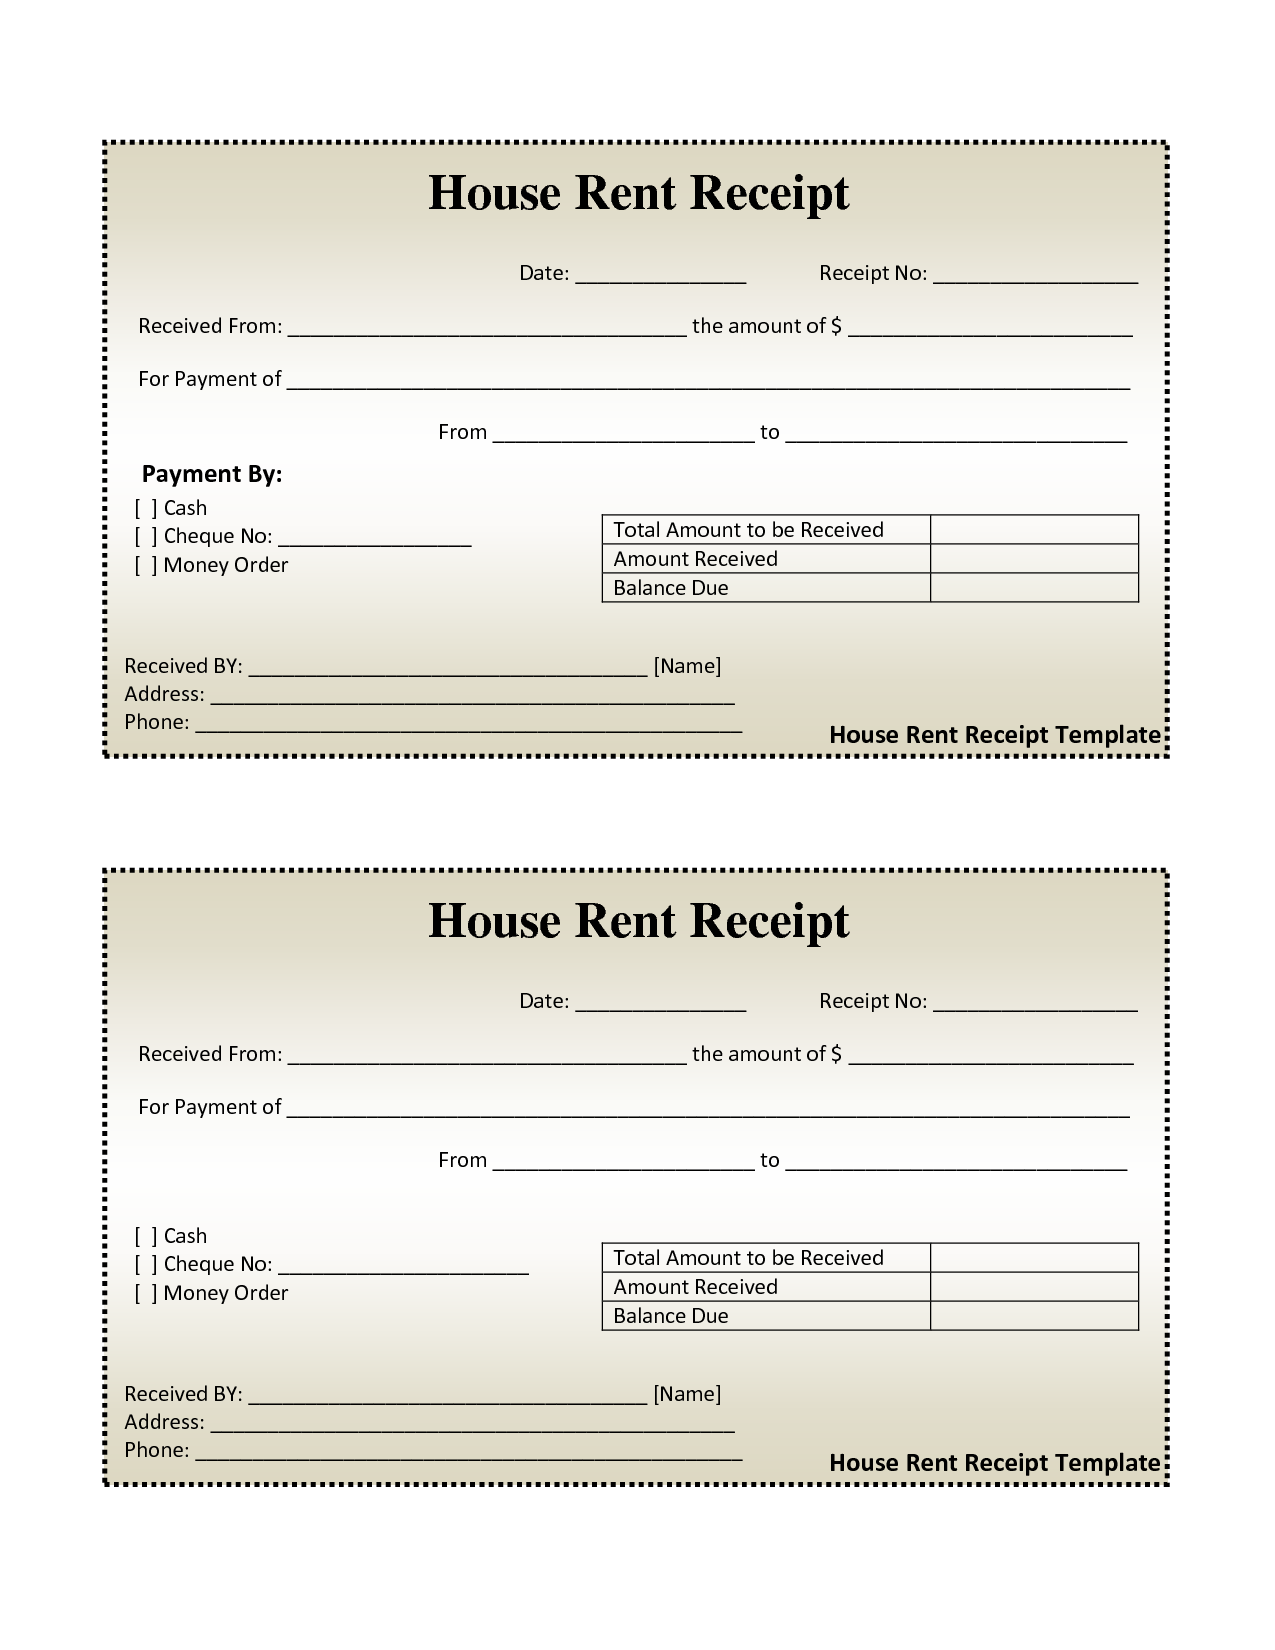 free house rental invoice – Format of House Rent Receipt